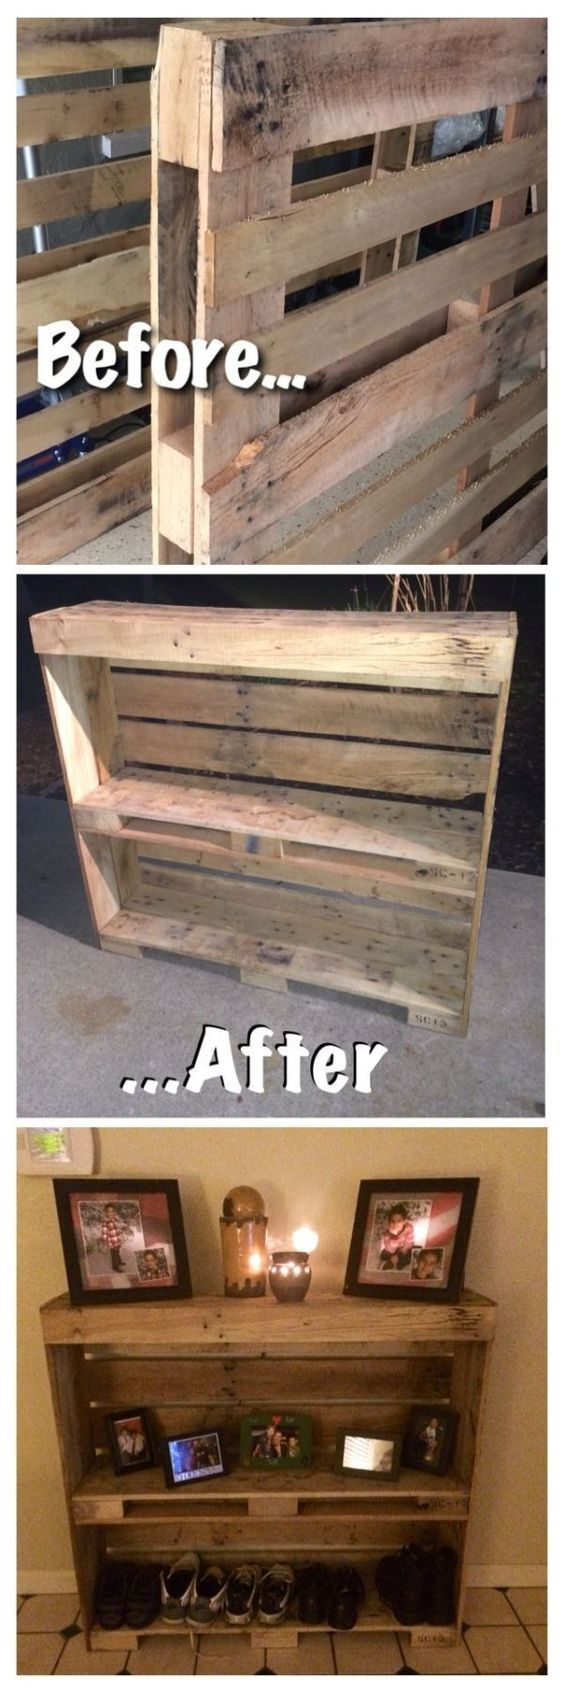 Pallet Projects Easy Diy Ideas For Old Pallet Wood Mega Diy Board